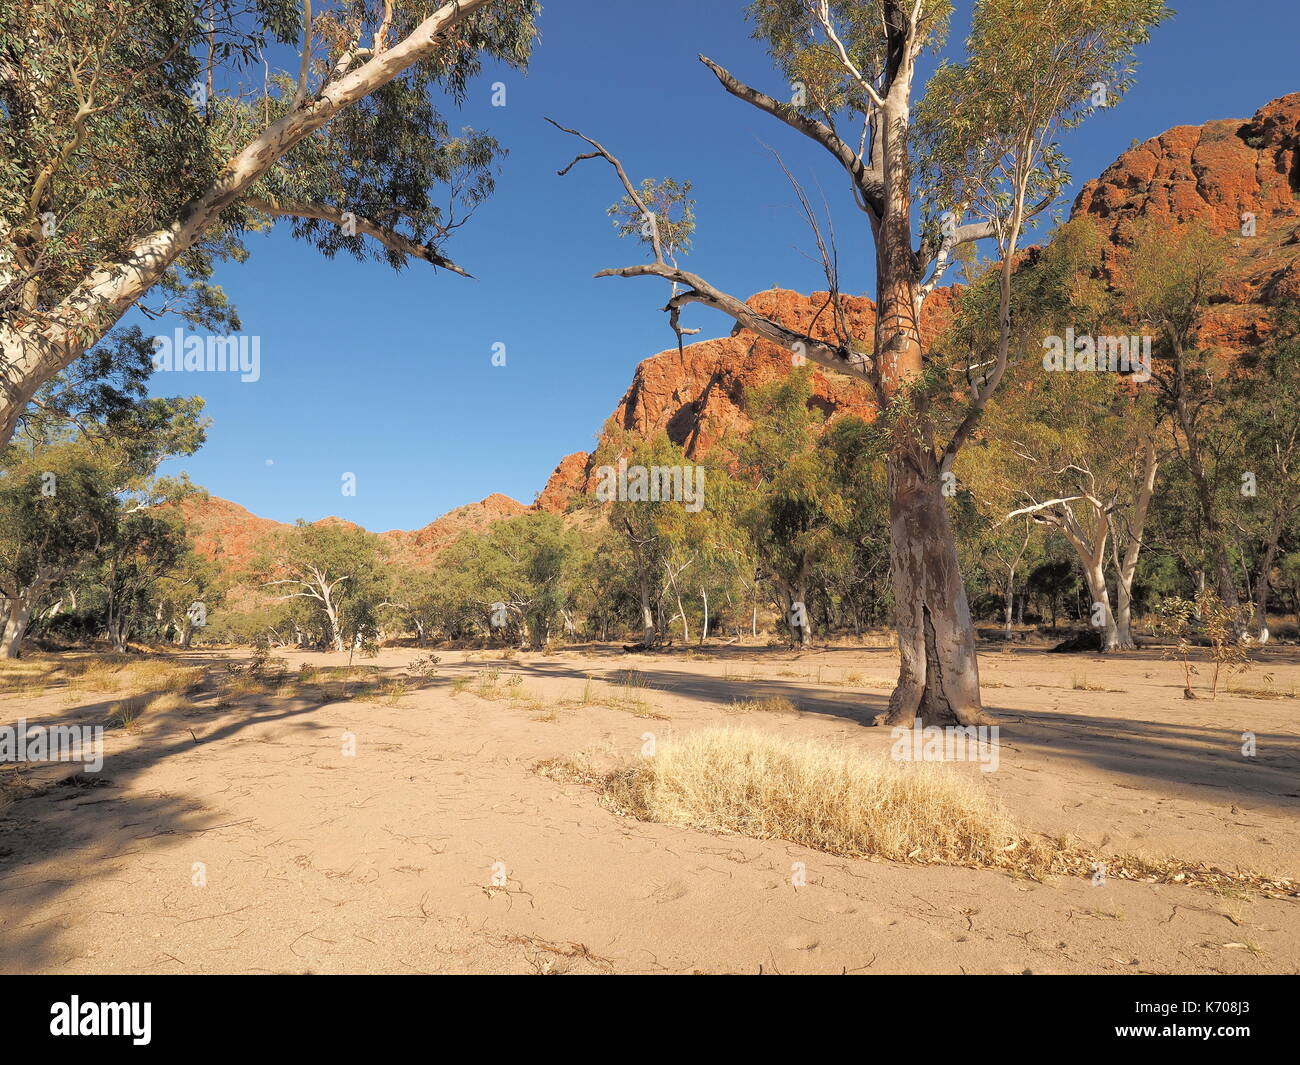 Dry sandy river bed of Trephina river near Trephina Gorge, east MacDonnell ranges near Alice Springs, Northern Territory, Australia 2017 - Stock Image